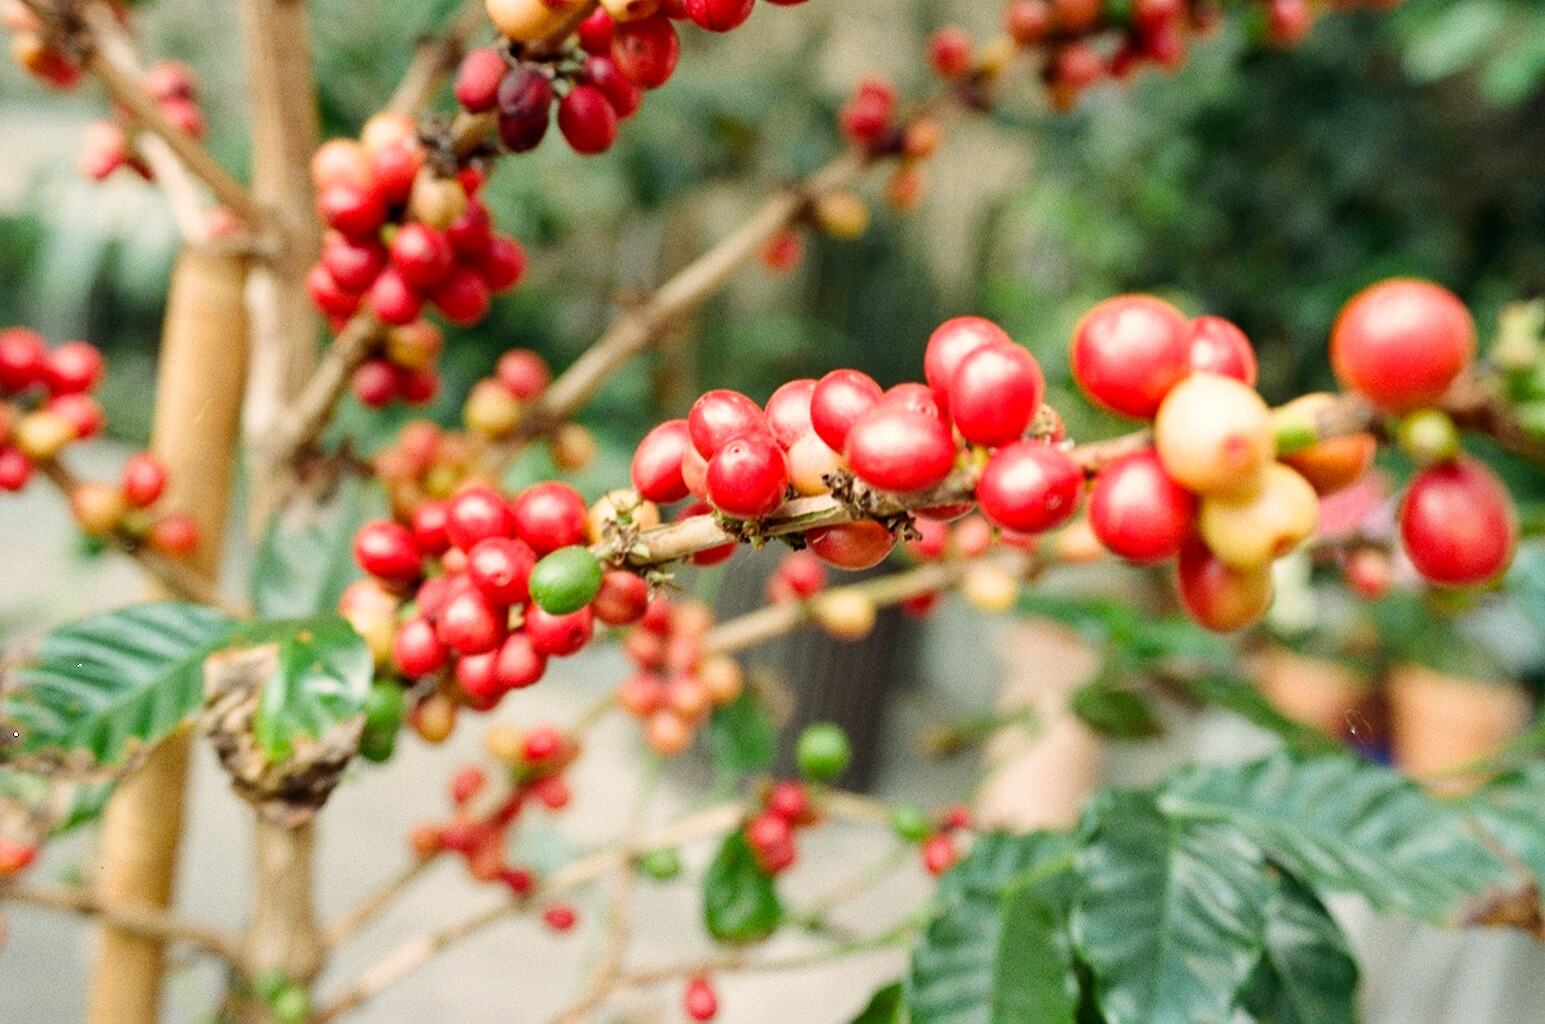 A cluster of bright red coffee cherries on a branch with green leaves.